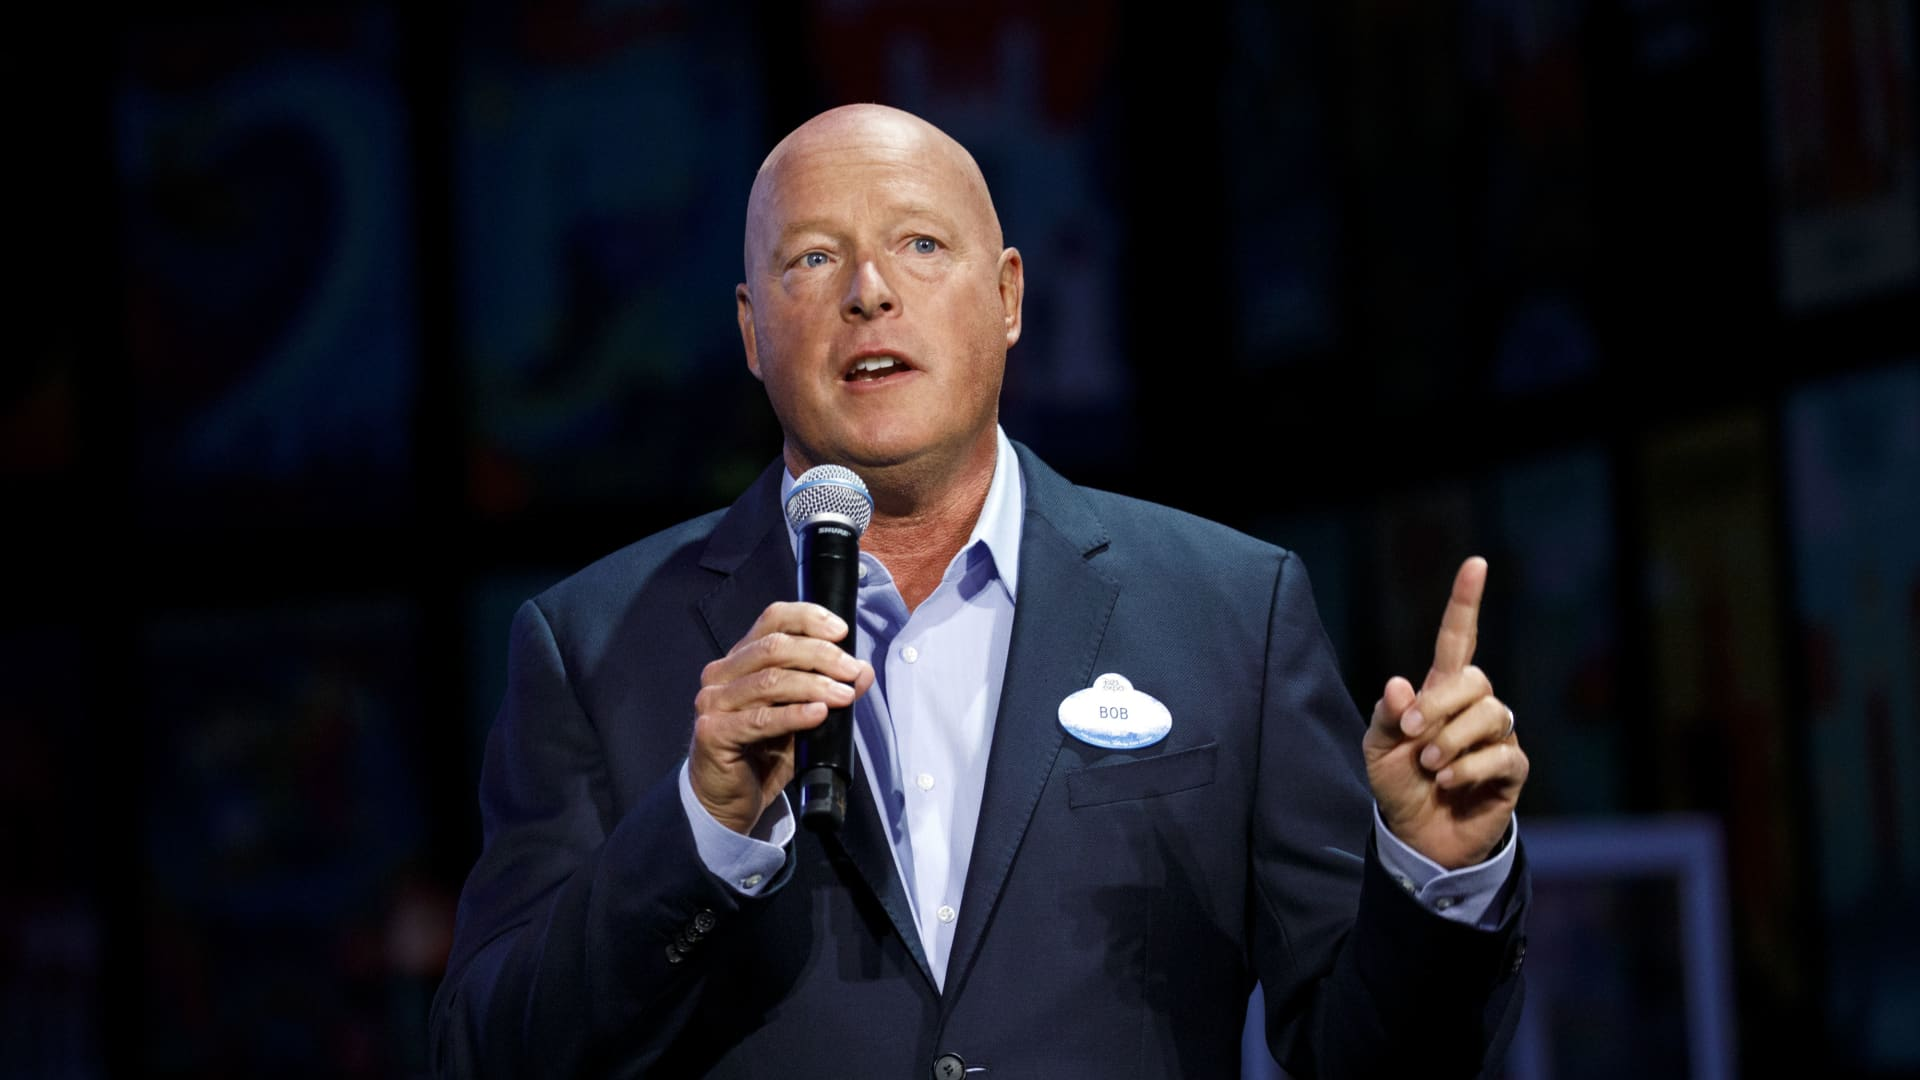 Bob Chapek, CEO of the Walt Disney Company and former head of Walt Disney Parks and Experiences, speaks during a media preview of the D23 Expo 2019 in Anaheim, California, Aug. 22, 2019.